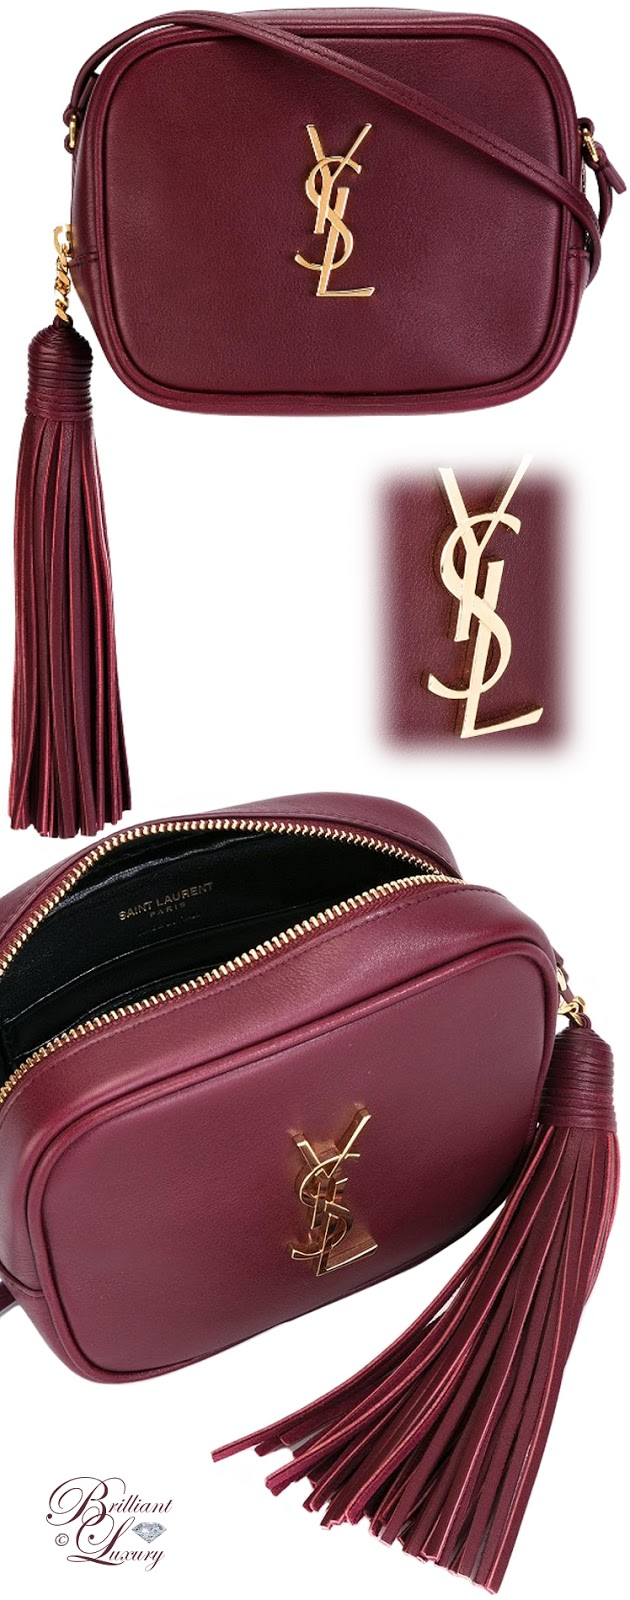 Brilliant Luxury ♦ Saint Laurent Monogram Blogger Crossbody Bag